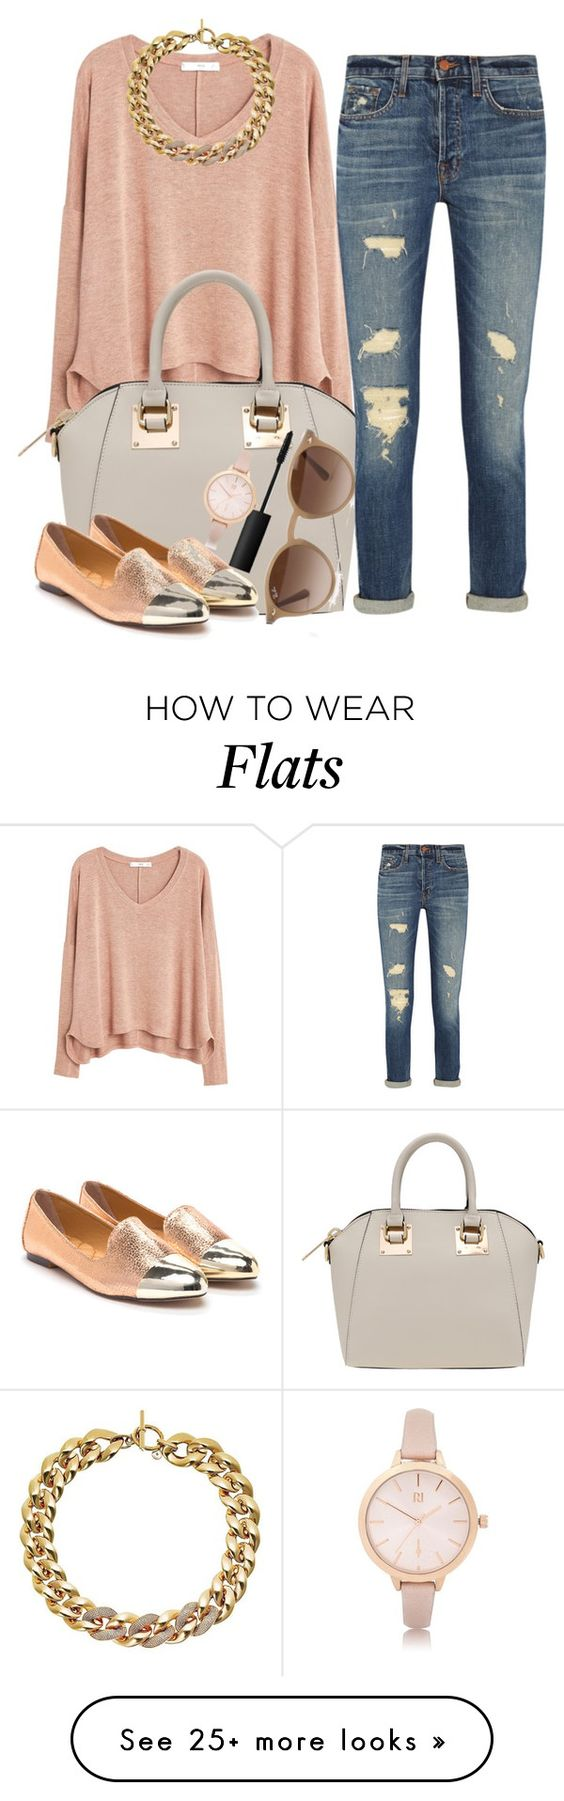 """""""Untitled #735"""" by evaapombo21 on Polyvore featuring MANGO, Ray-Ban, J Brand, NARS Cosmetics, River Island and Michael Kors"""